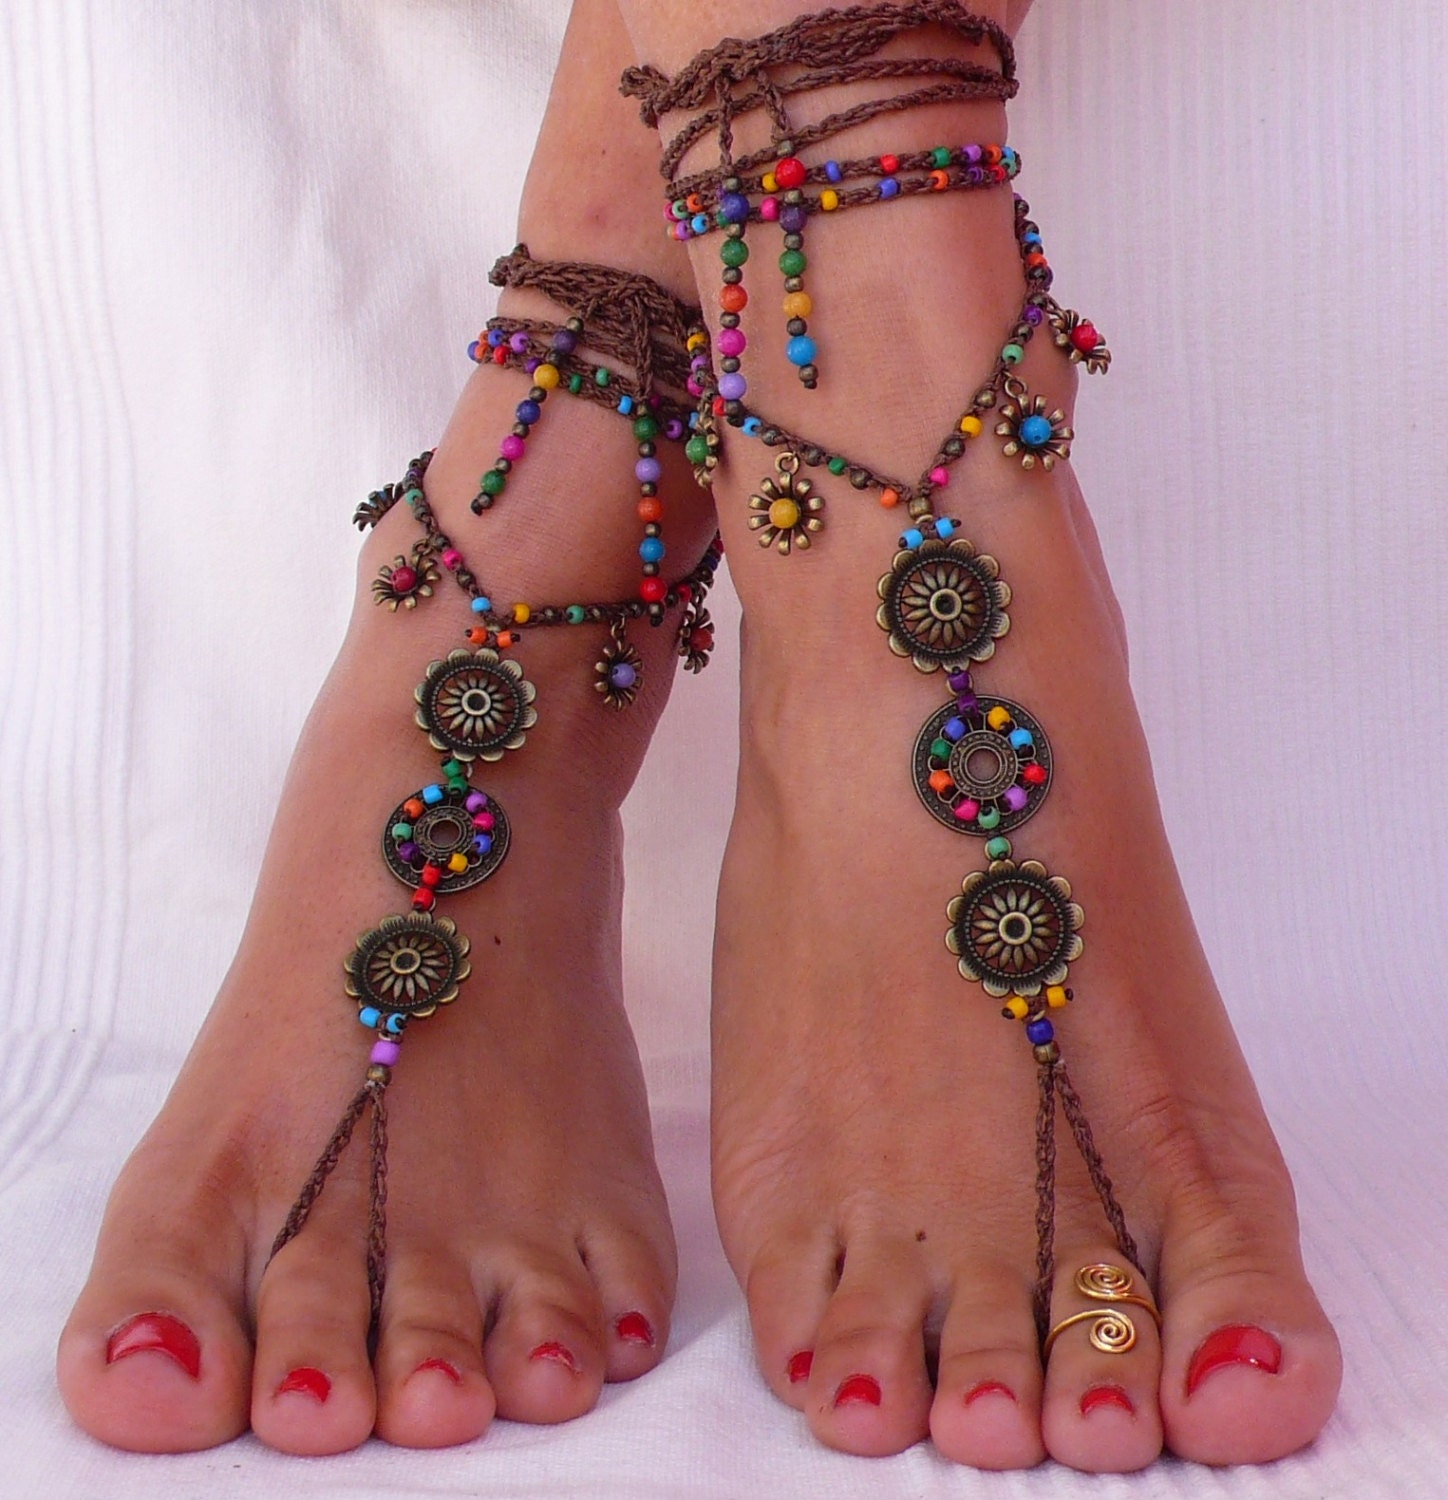 bridal barefoot pin jeweled vacation foot jewelry sandals bling anklet wedding